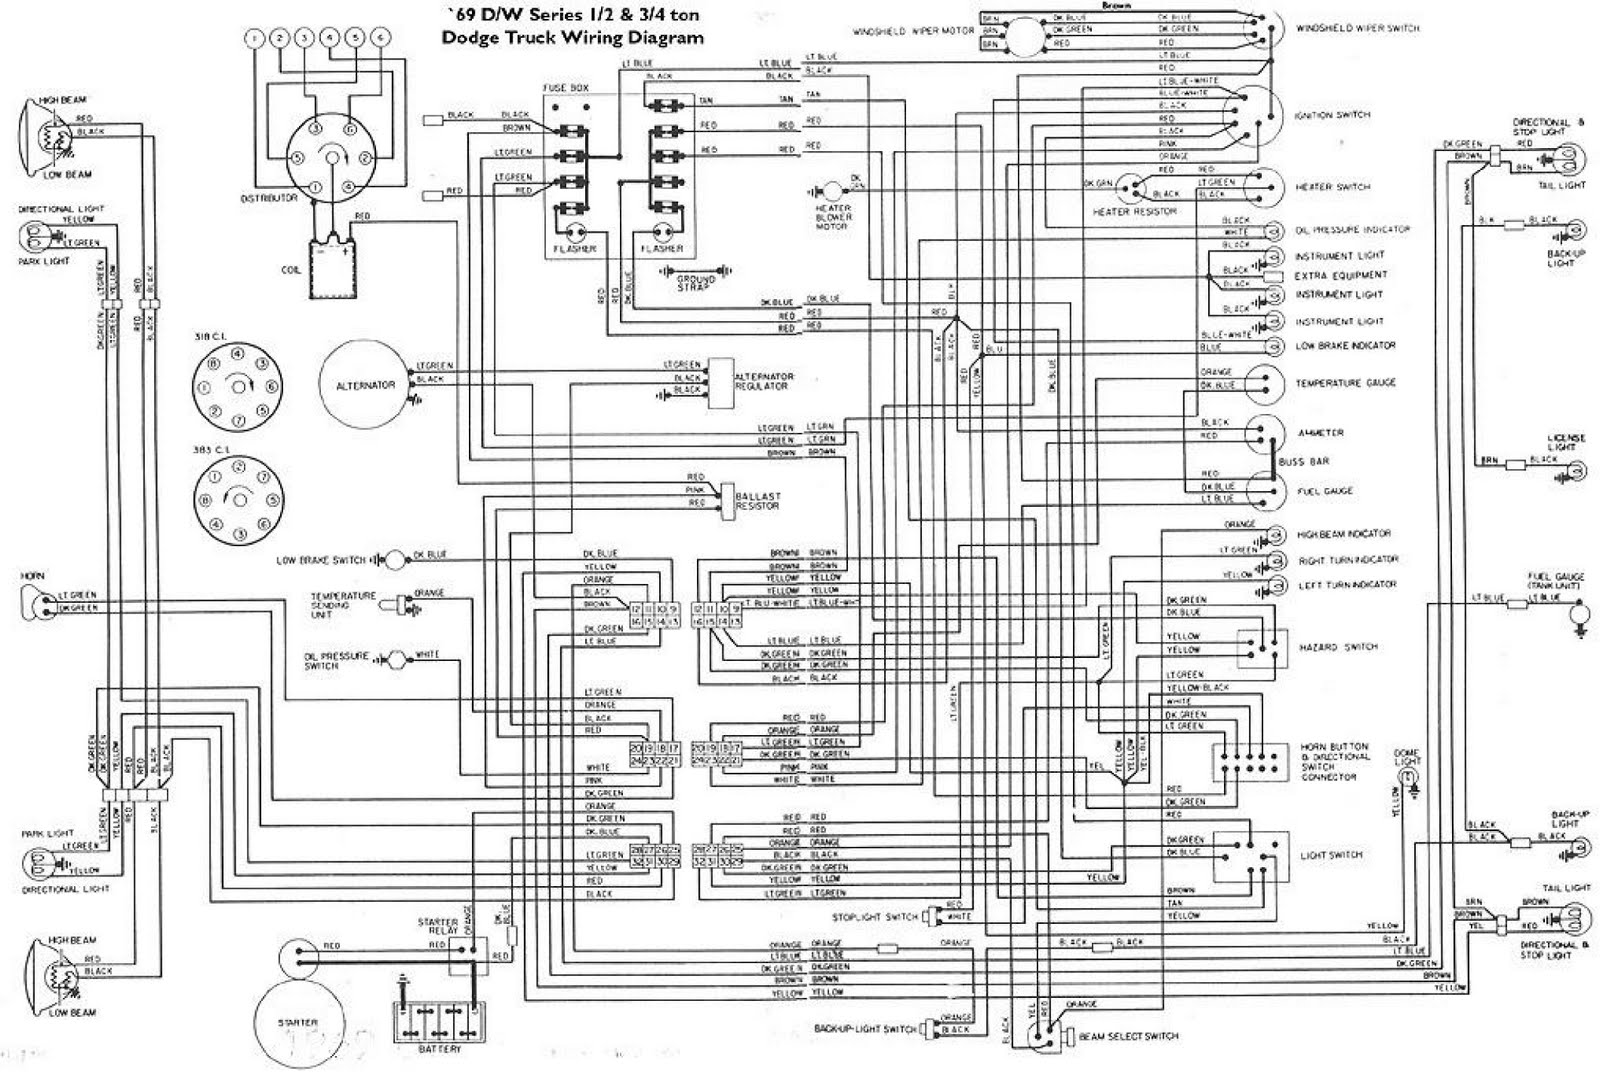 1969 s DW Series    Dodge       Truck       Wiring       Diagram      Schematic